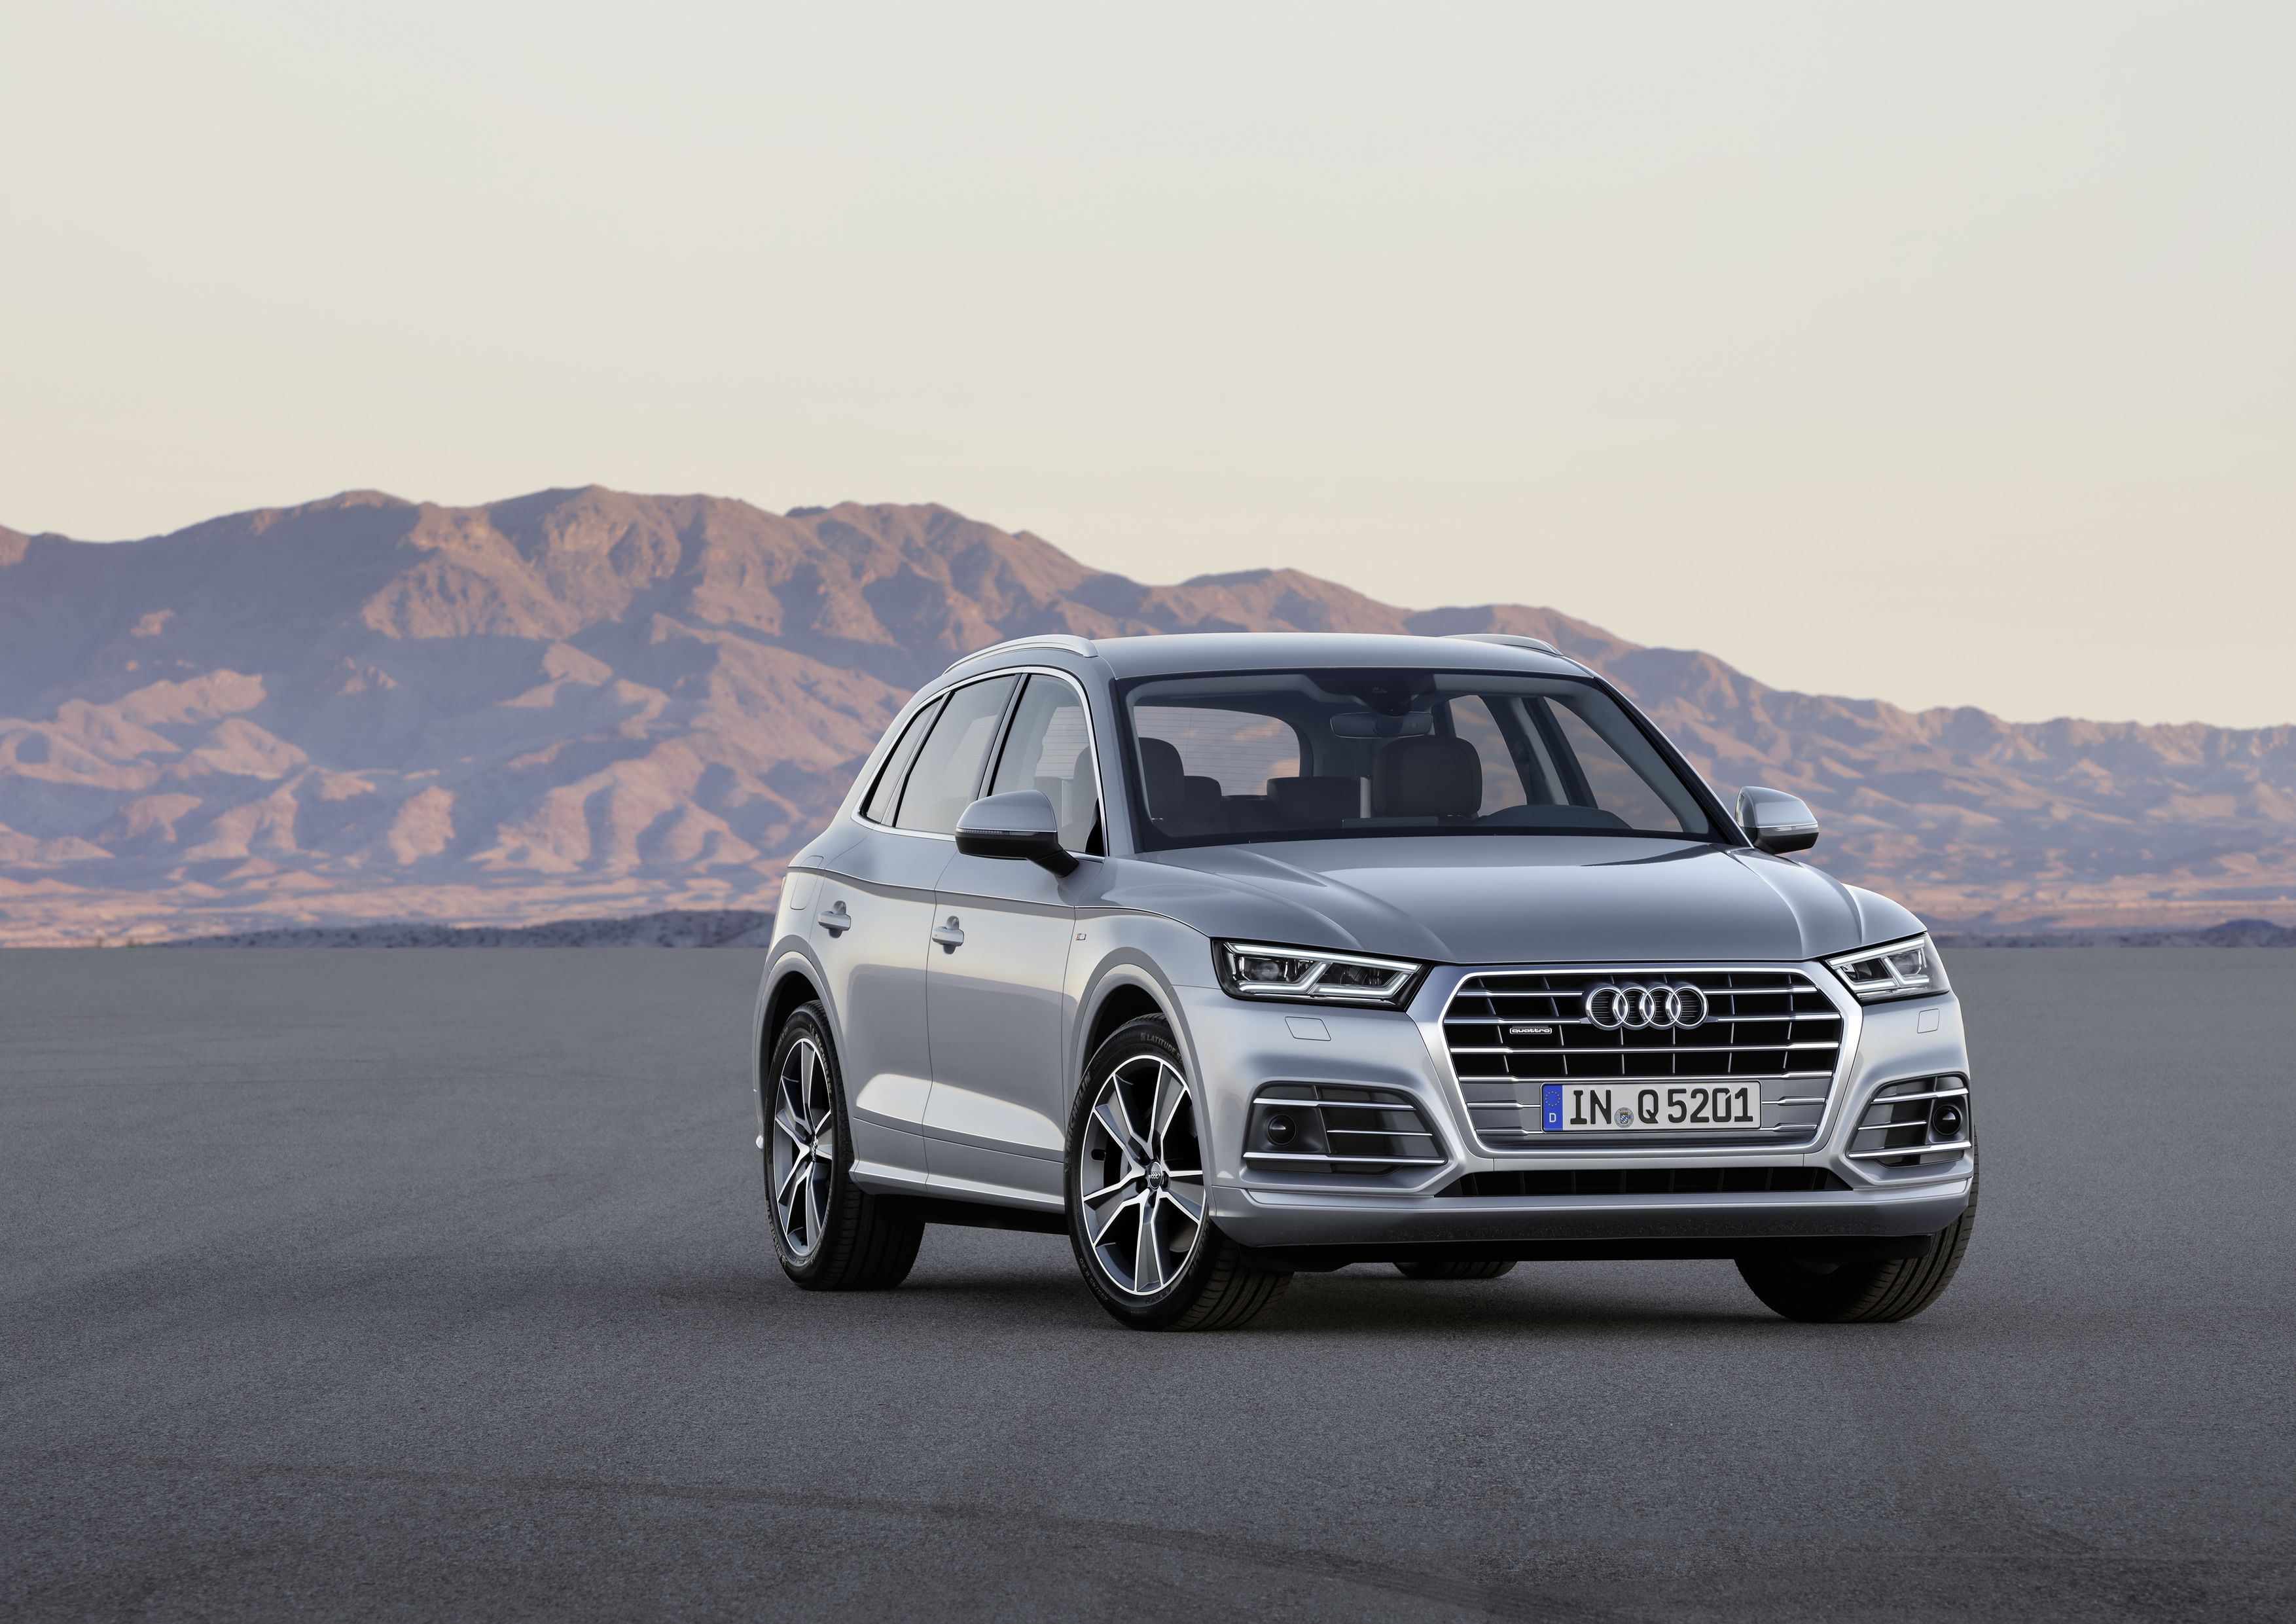 Top gear drives the new all new audi q5 http www